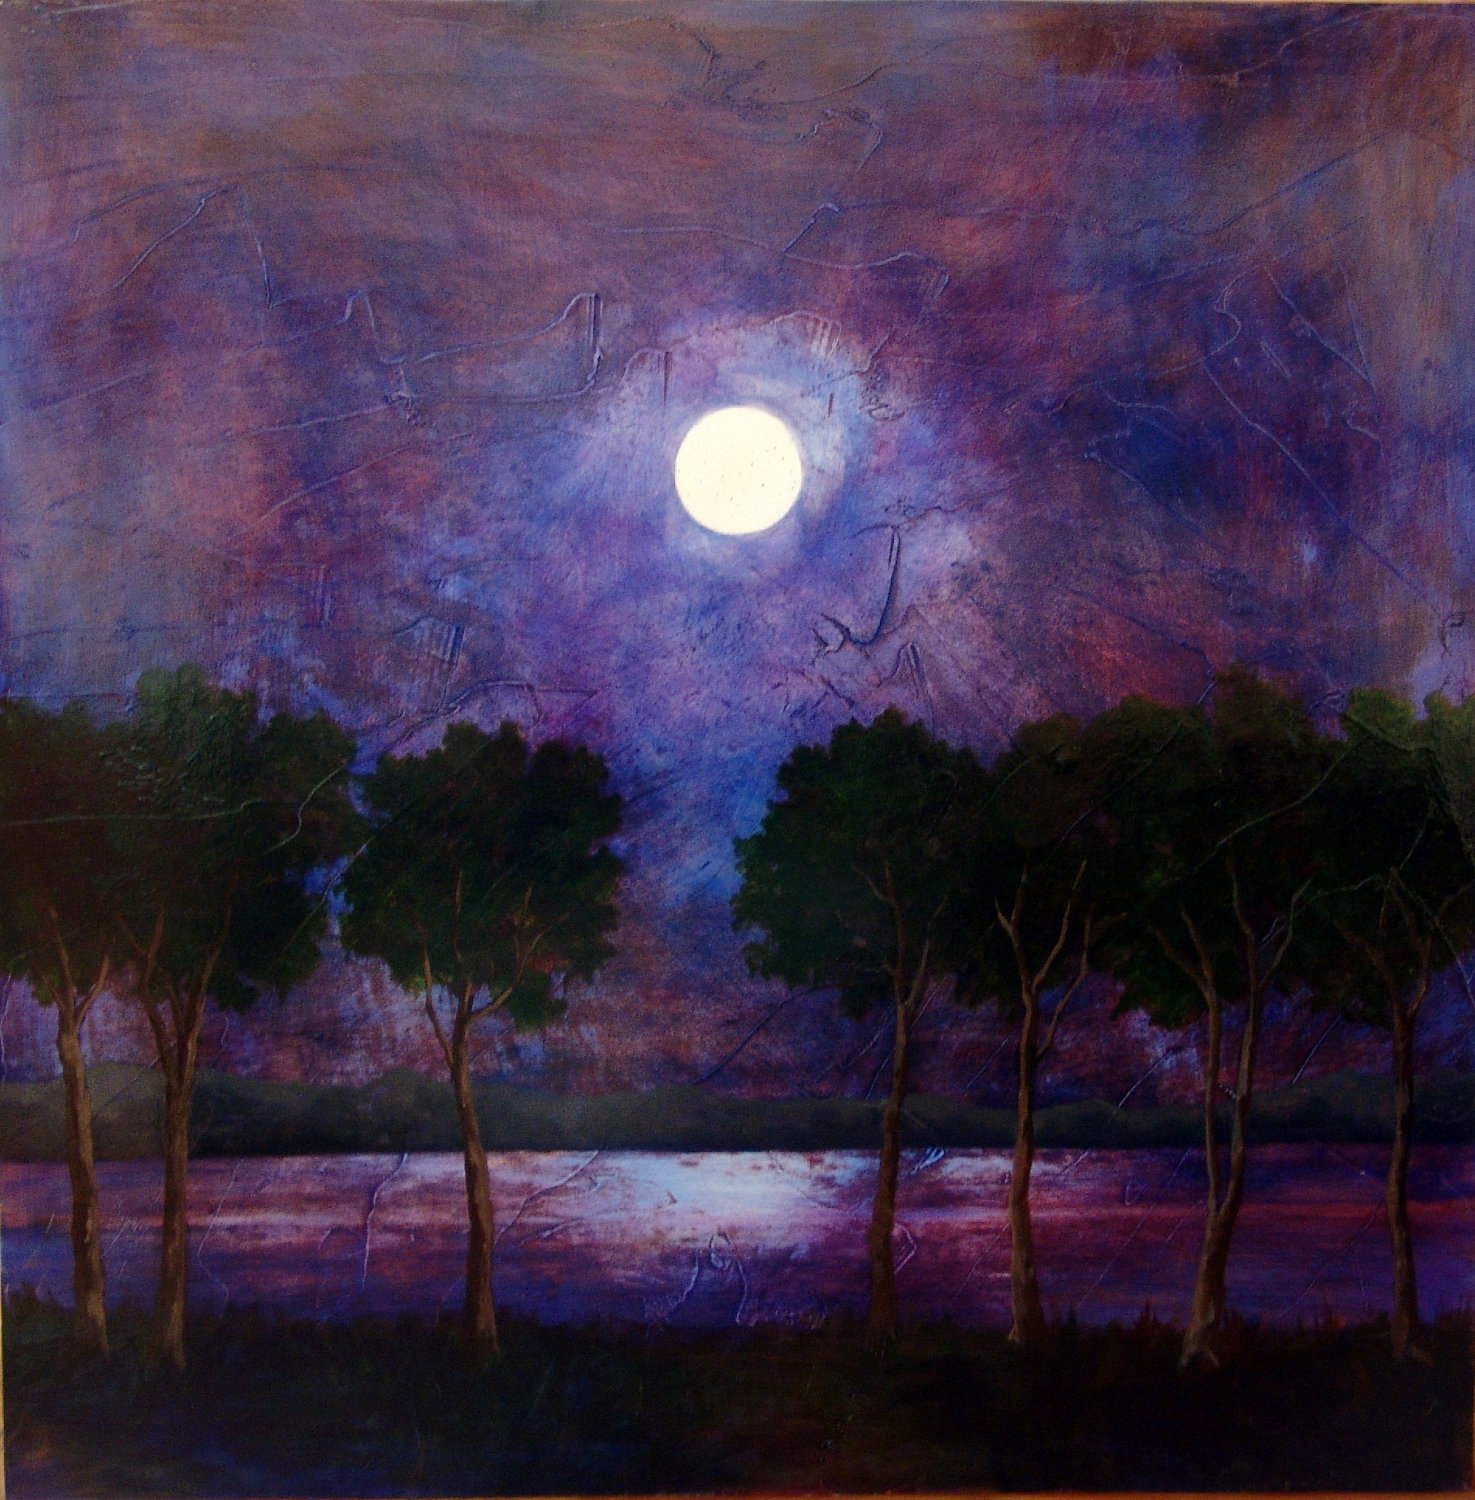 oil-painting-of-the-night-sky-for-sale.jpg